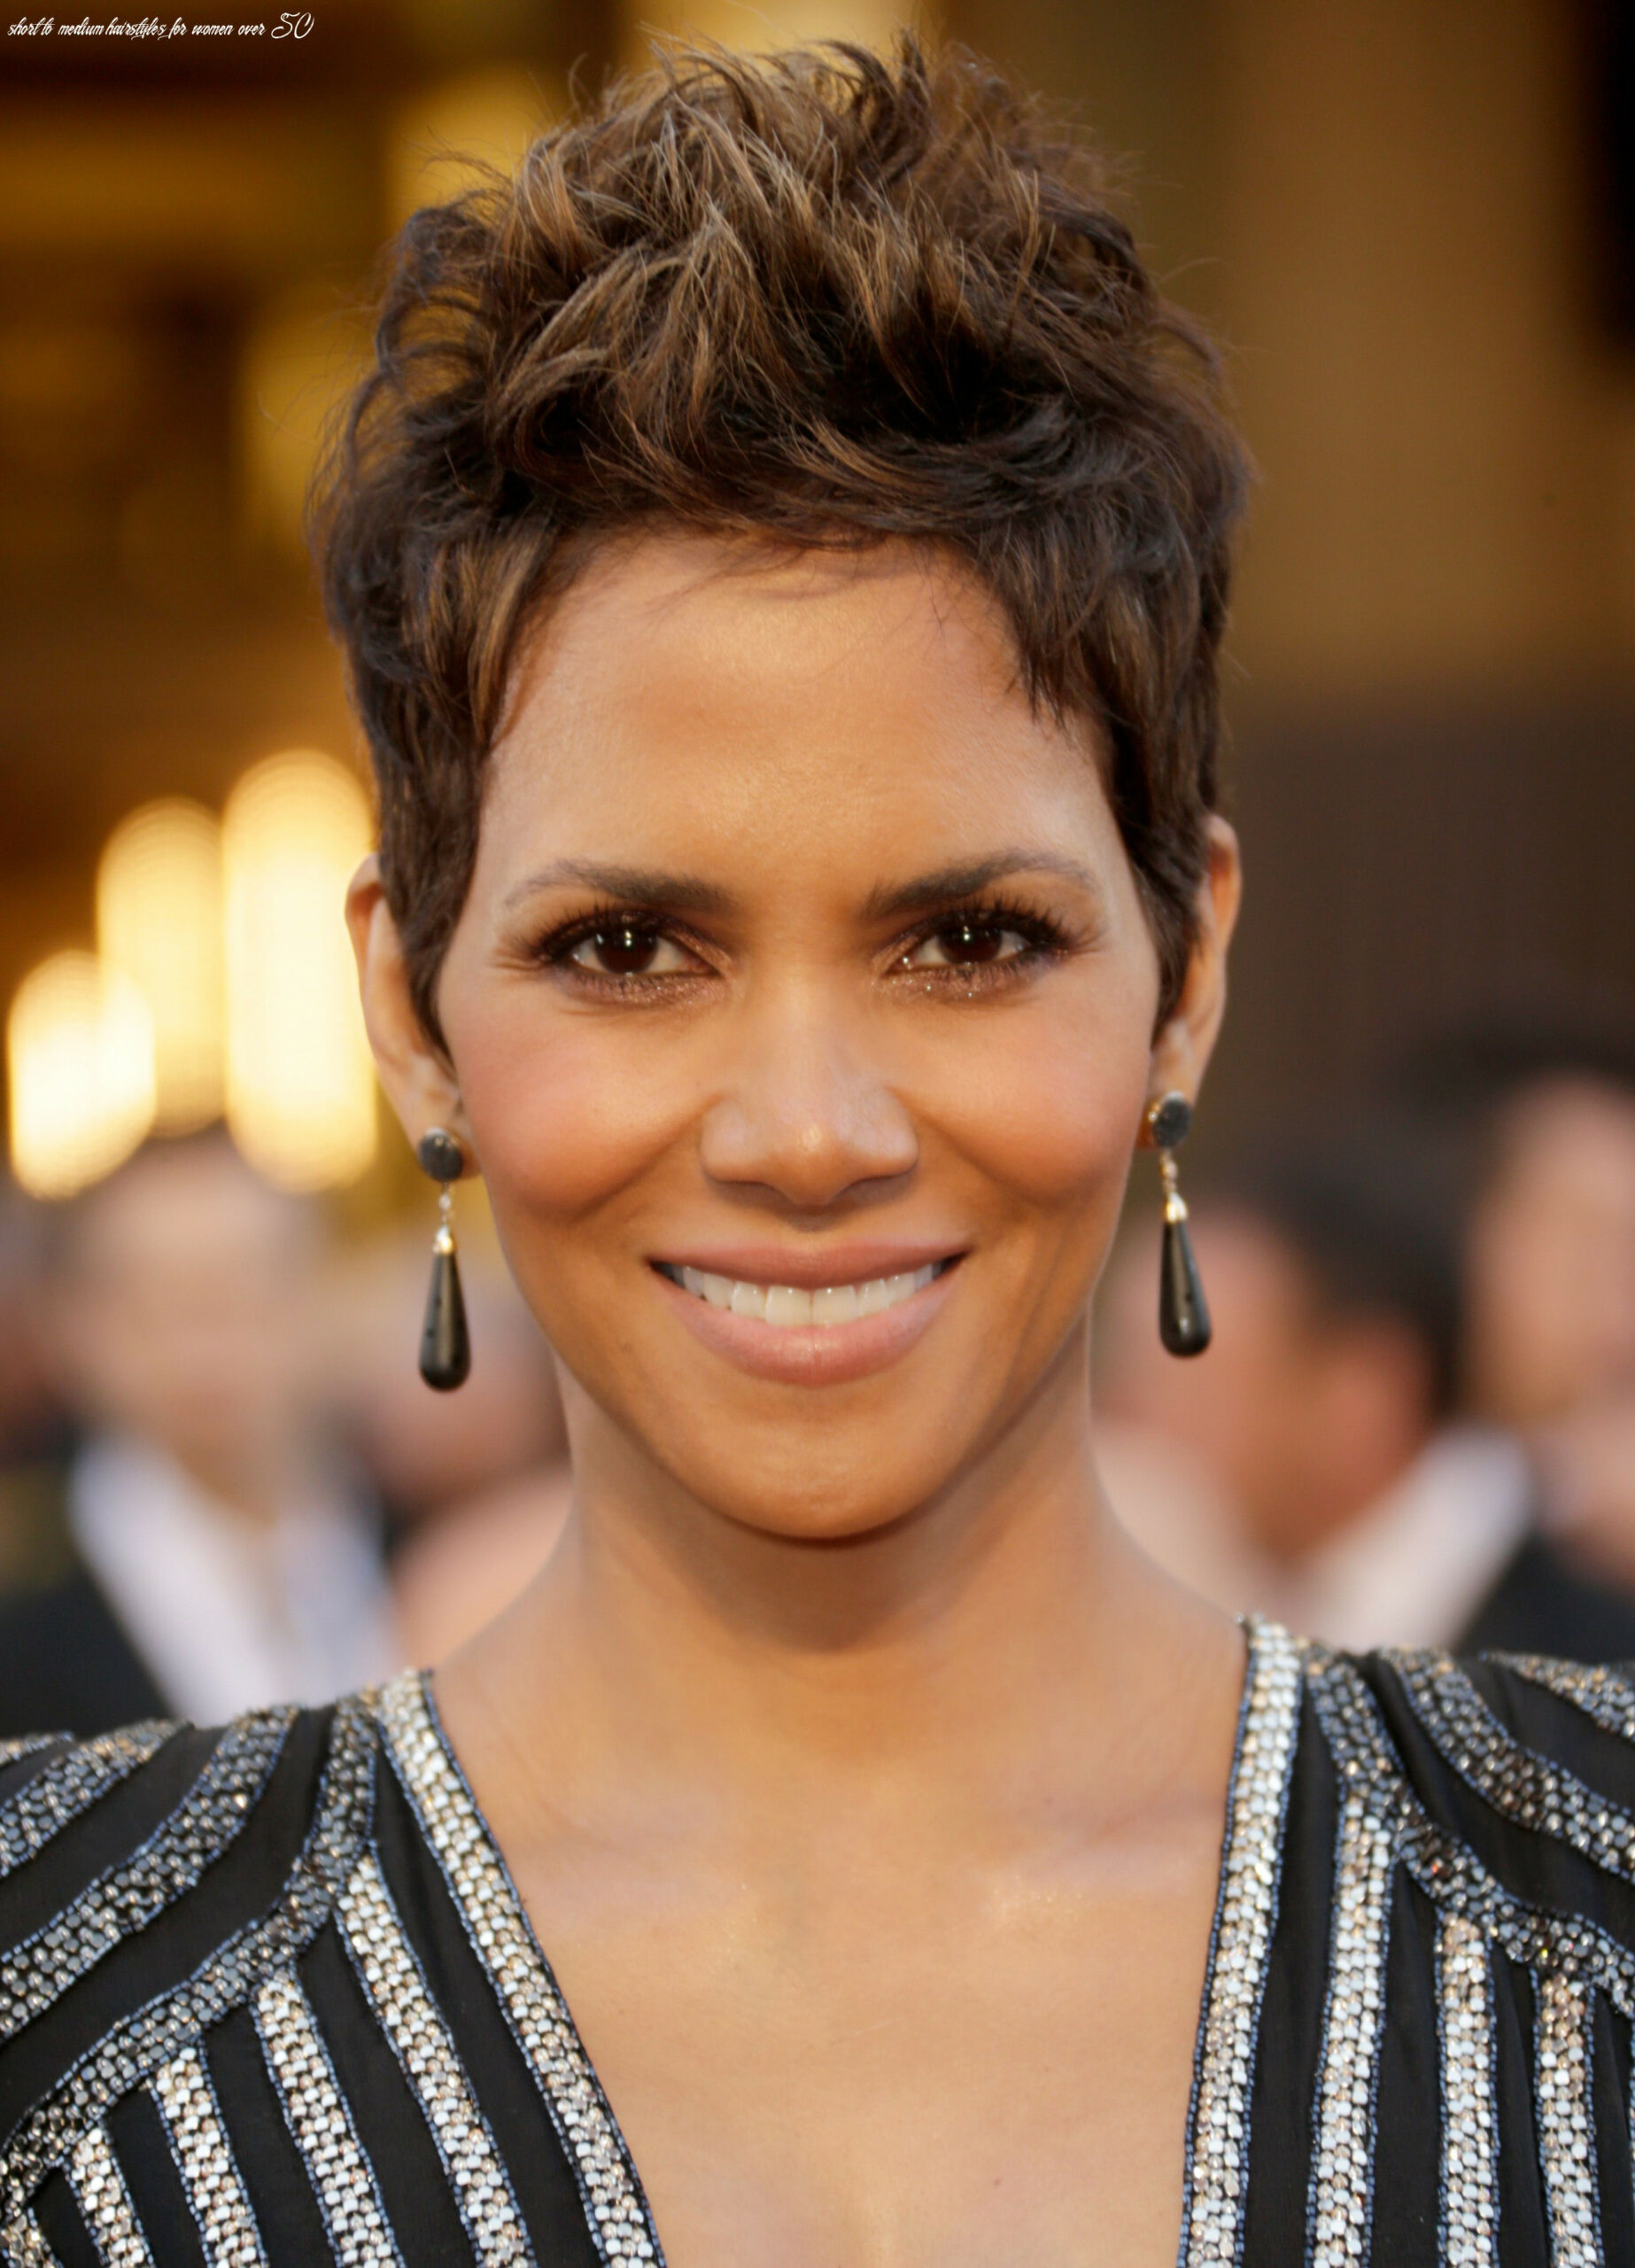 11 Classic and Cool Short Hairstyles for Older Women